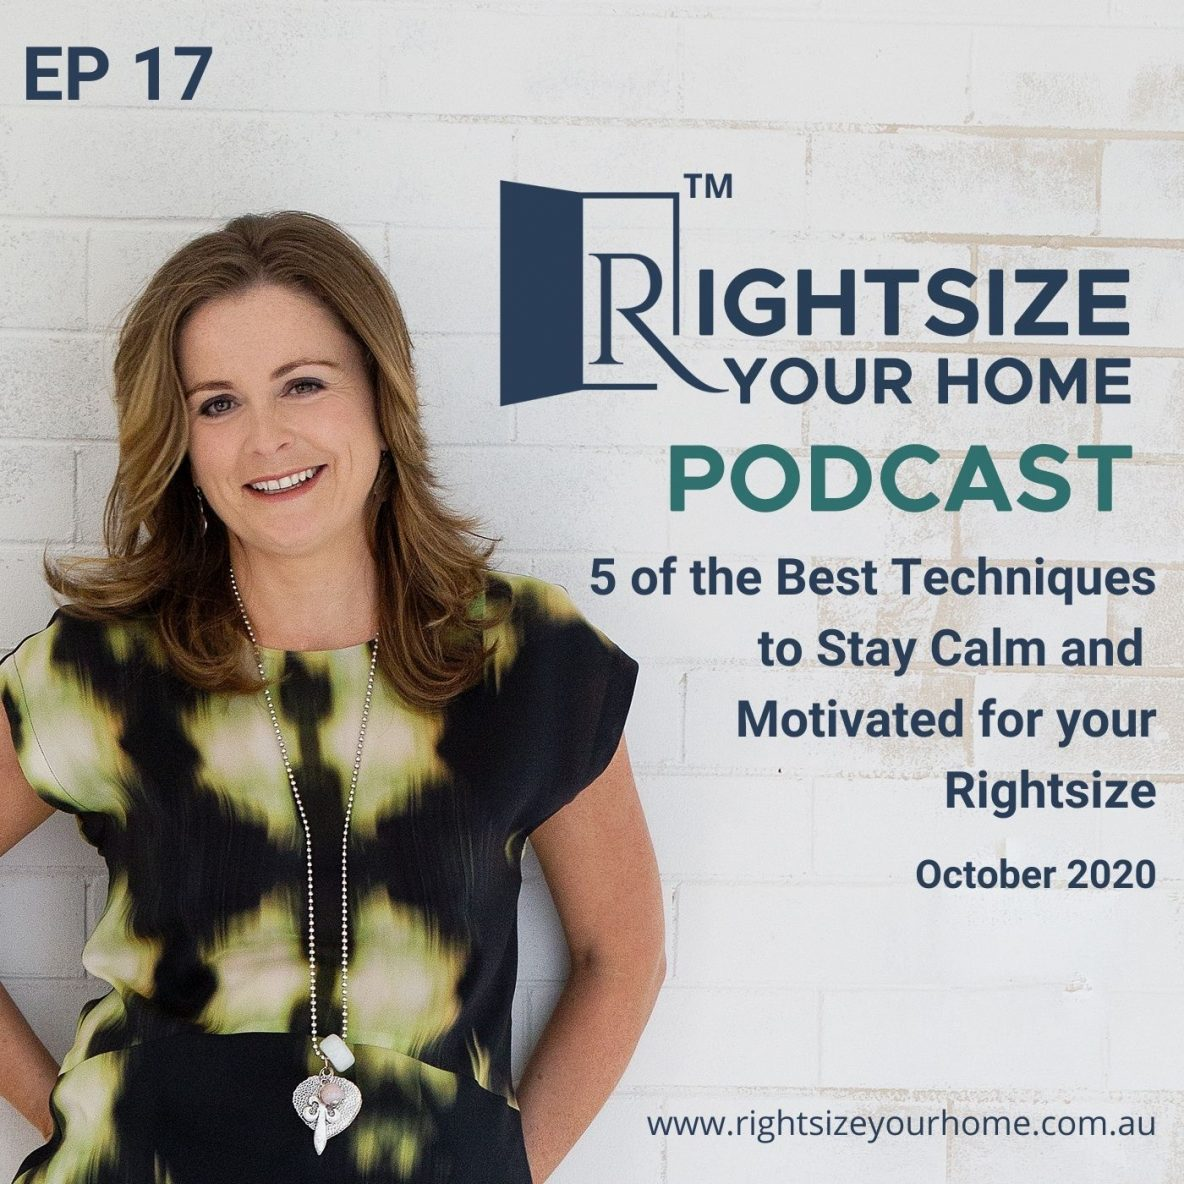 Stay Calm and Motivated for Your Rightsize